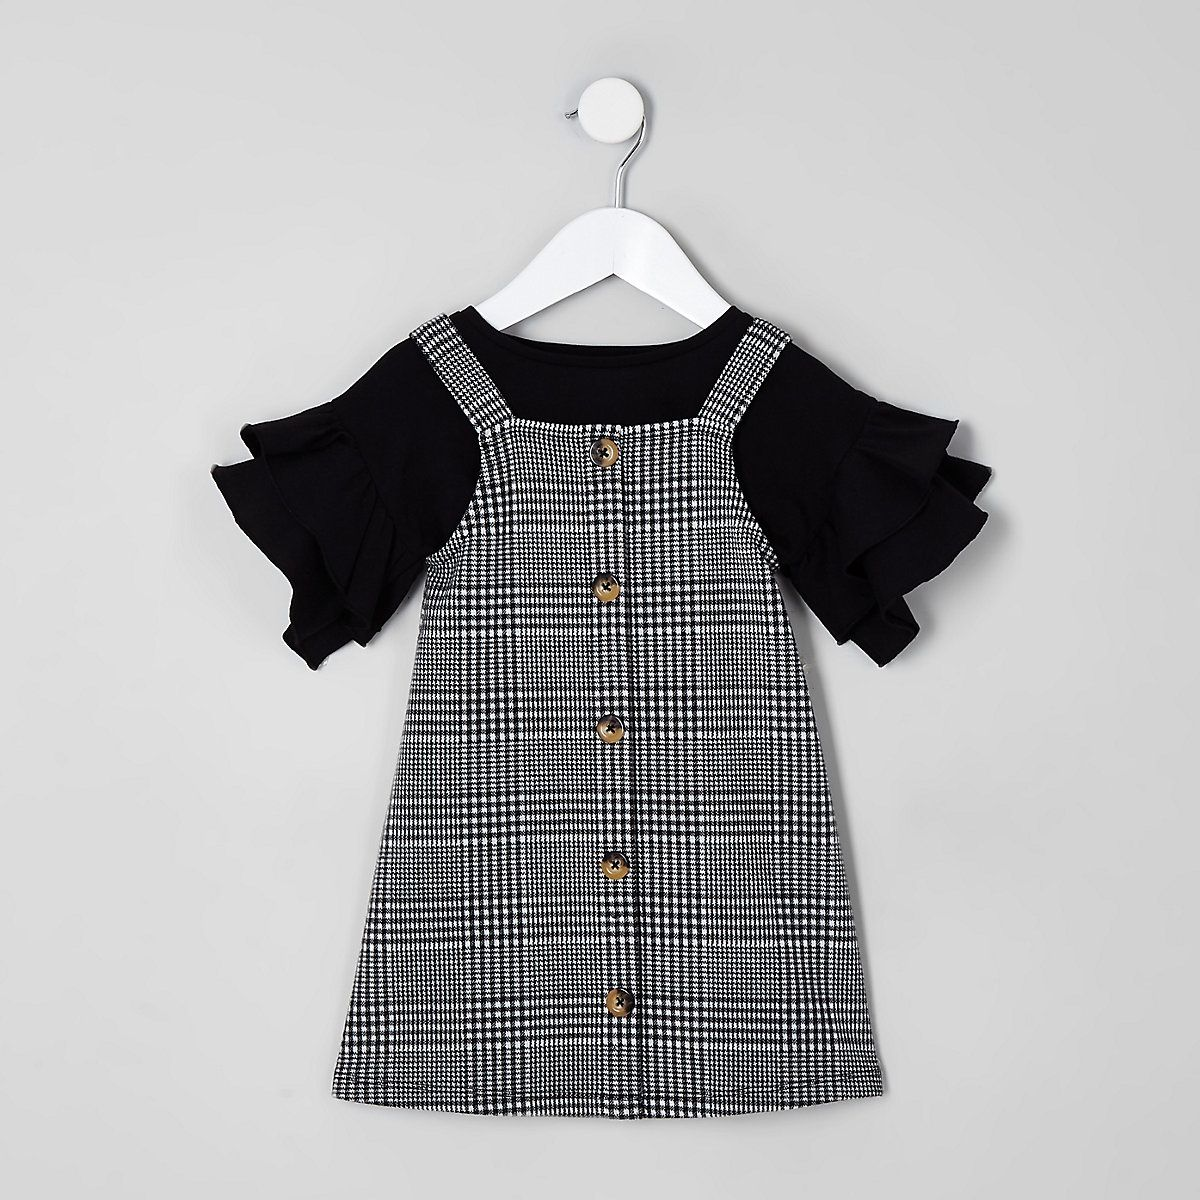 4db9b3637e7 Mini girls black check pinafore dress outfit - Baby Girls Dresses - Mini  Girls - girls